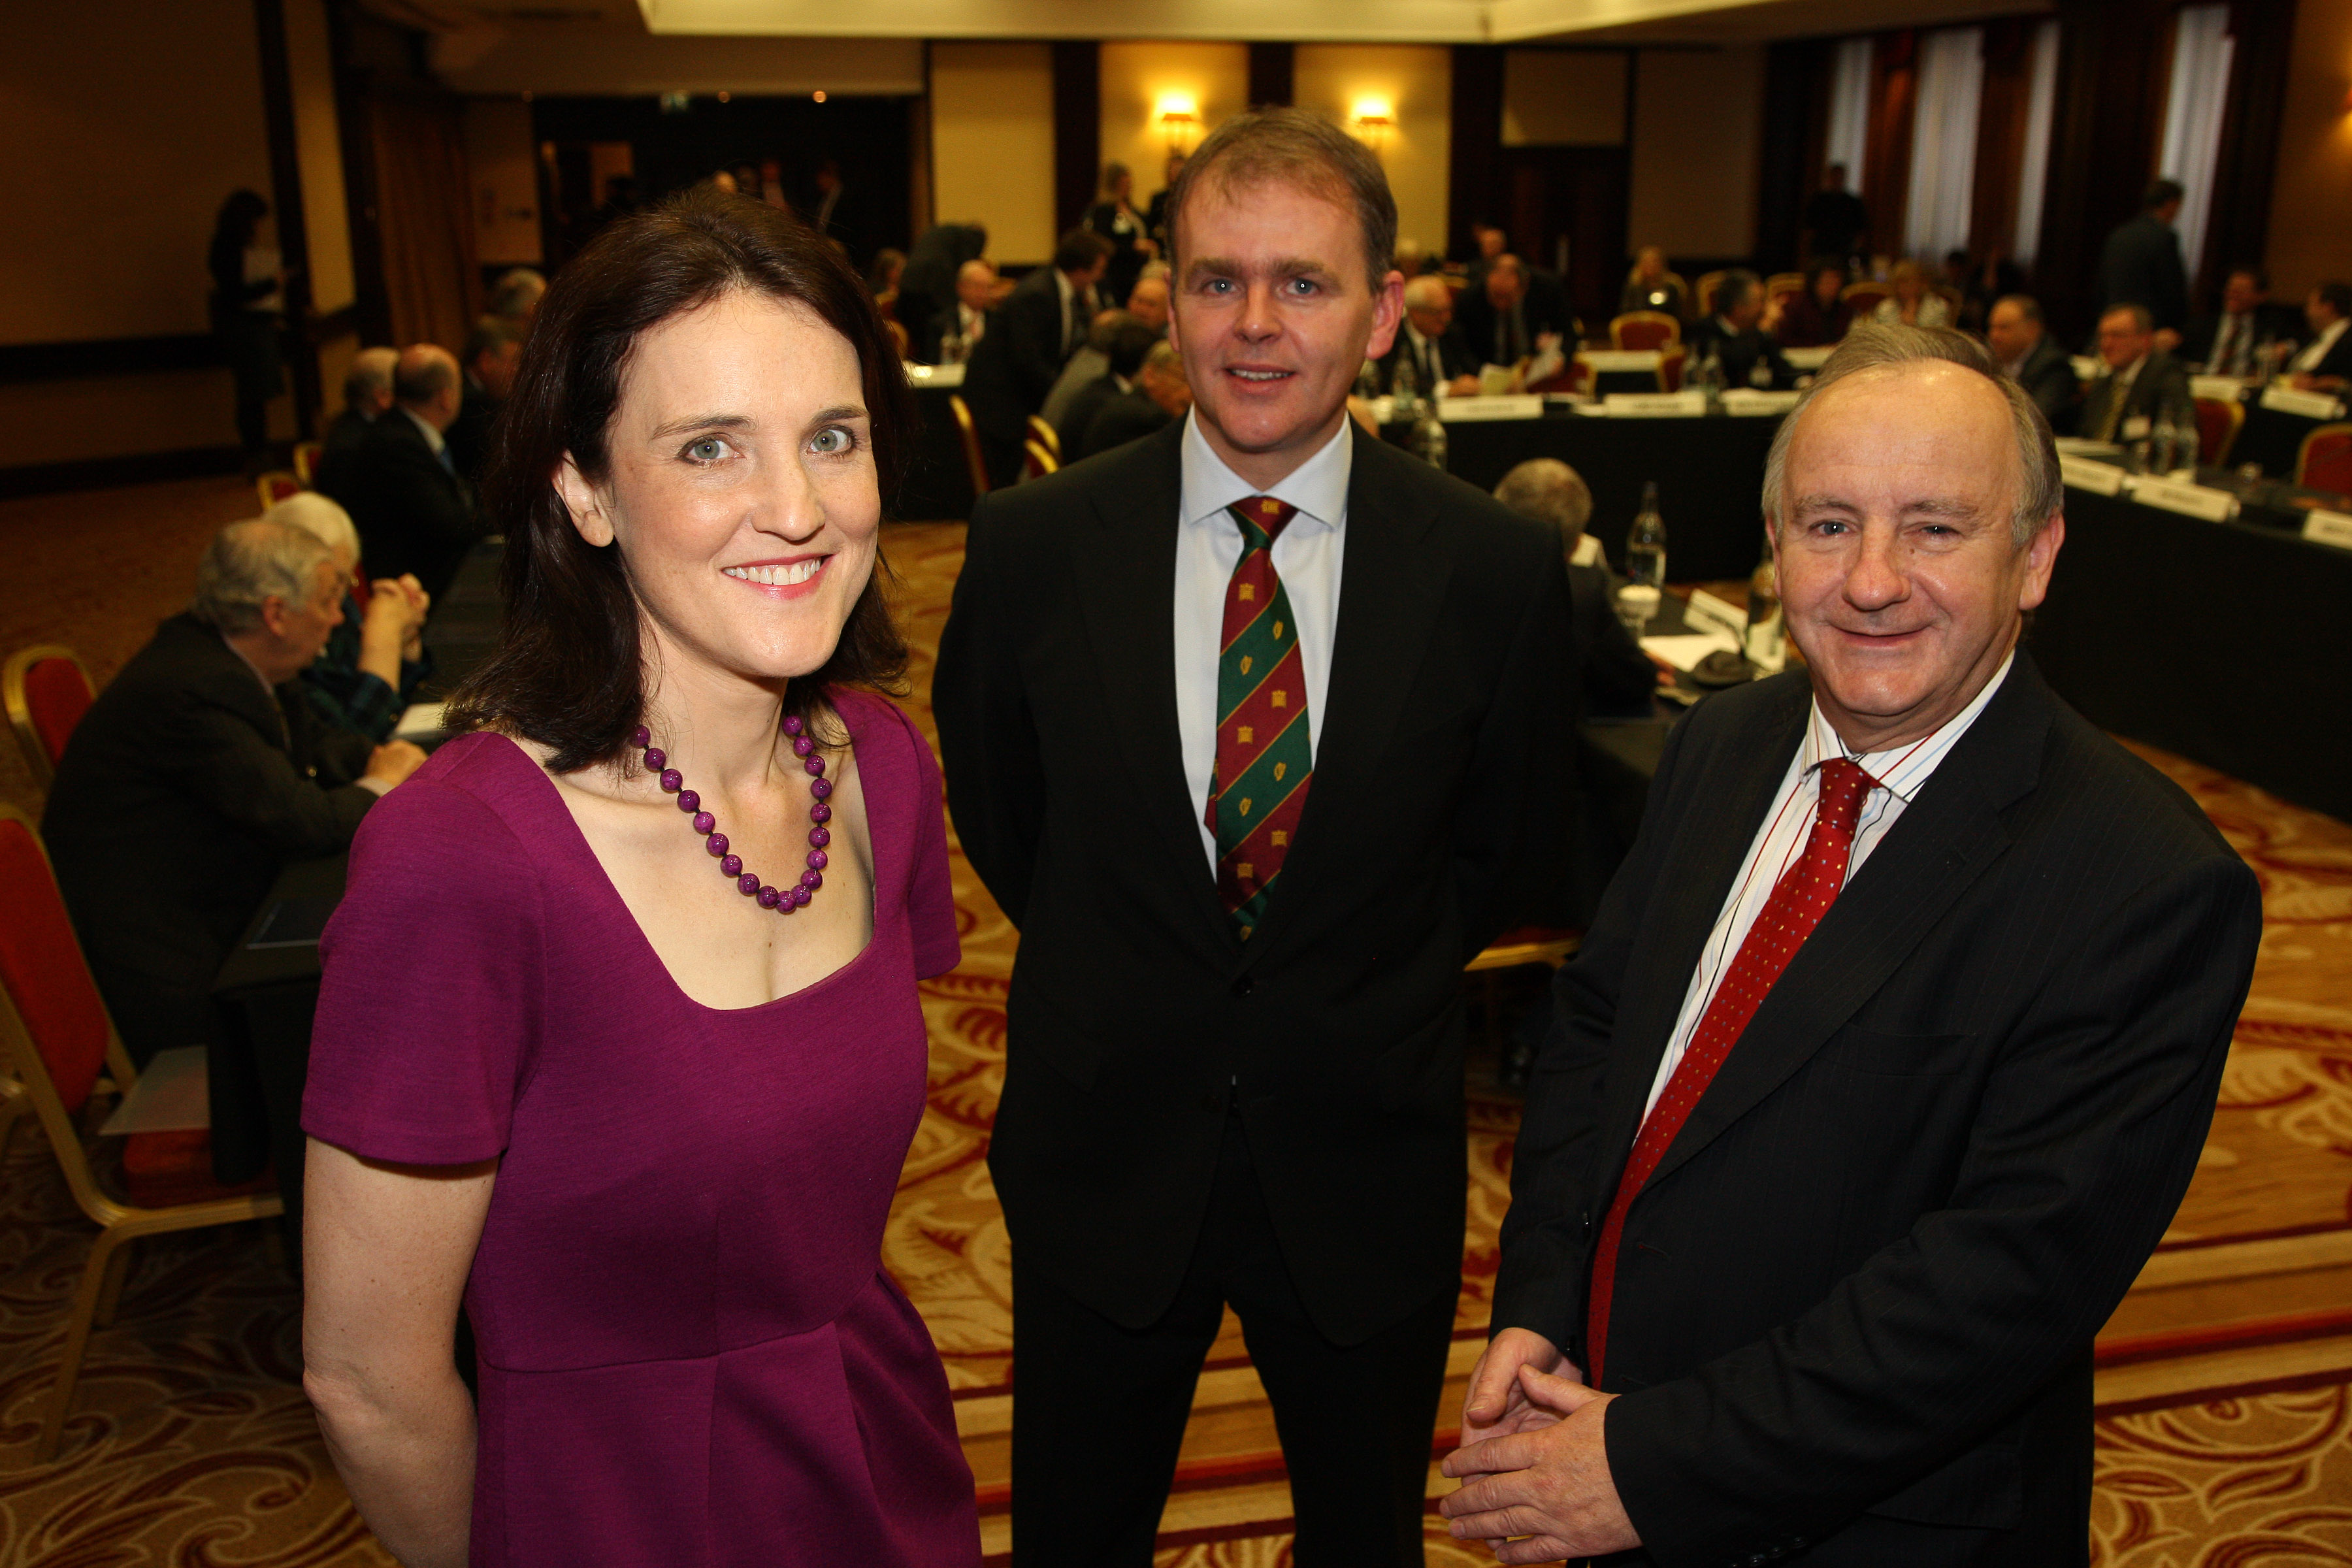 Secretary of State for Northern Ireland, Theresa Villiers MP, with the Co-Chairs of the British Irish Parliamentary Assembly, Joe McHugh TD and Laurence Robertson MP, at the 45th plenary, Glasgow